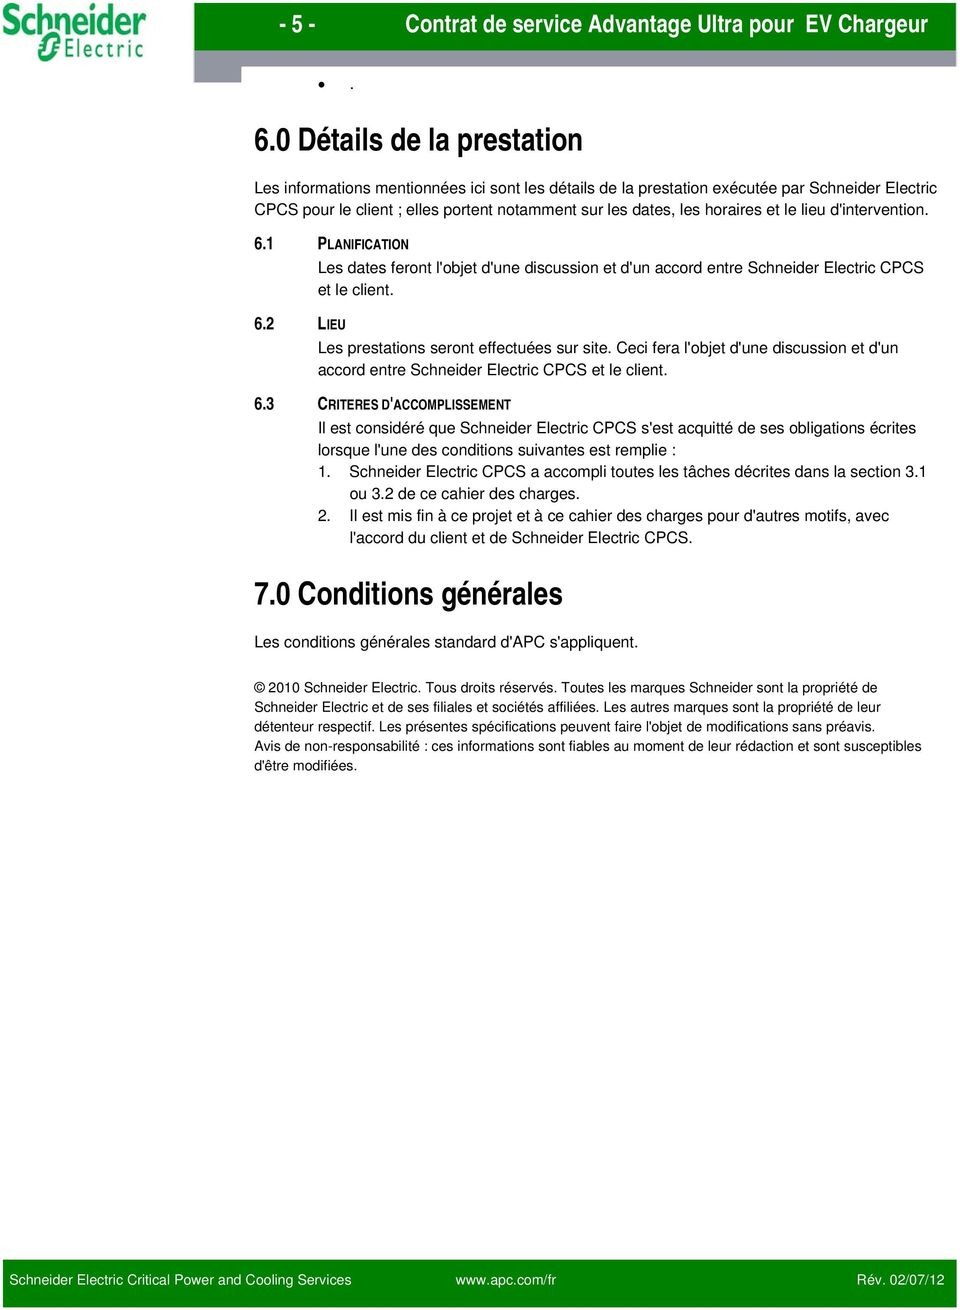 et le lieu d'intervention. 6.1 PLANIFICATION Les dates feront l'objet d'une discussion et d'un accord entre Schneider Electric CPCS et le client. 6.2 LIEU Les prestations seront effectuées sur site.